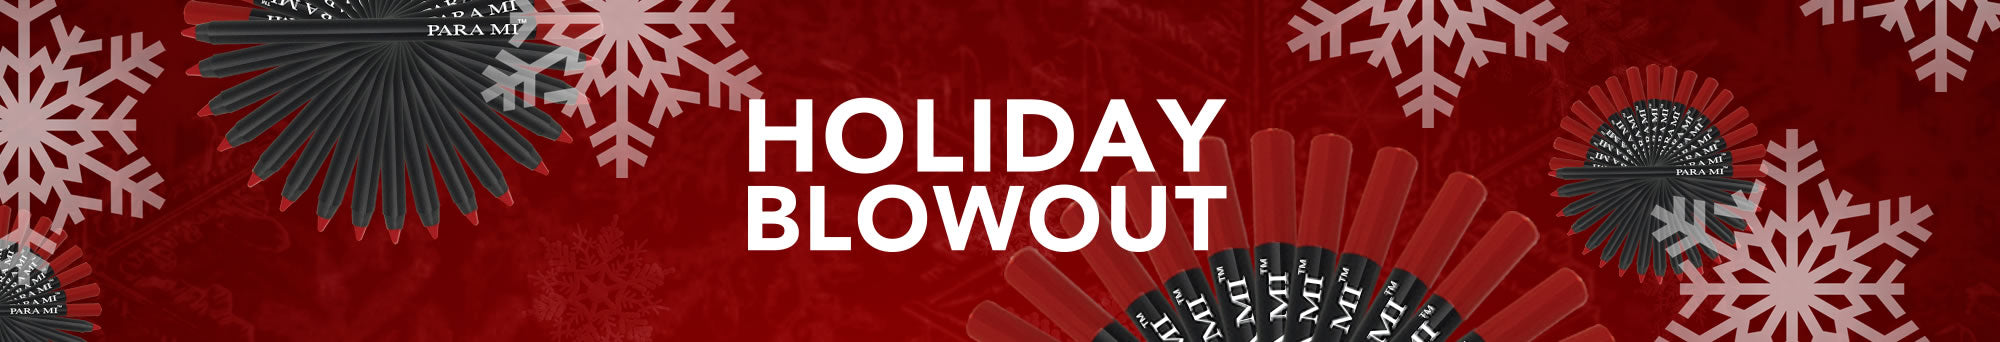 $5 $3 $1 Holiday Blowout Sale